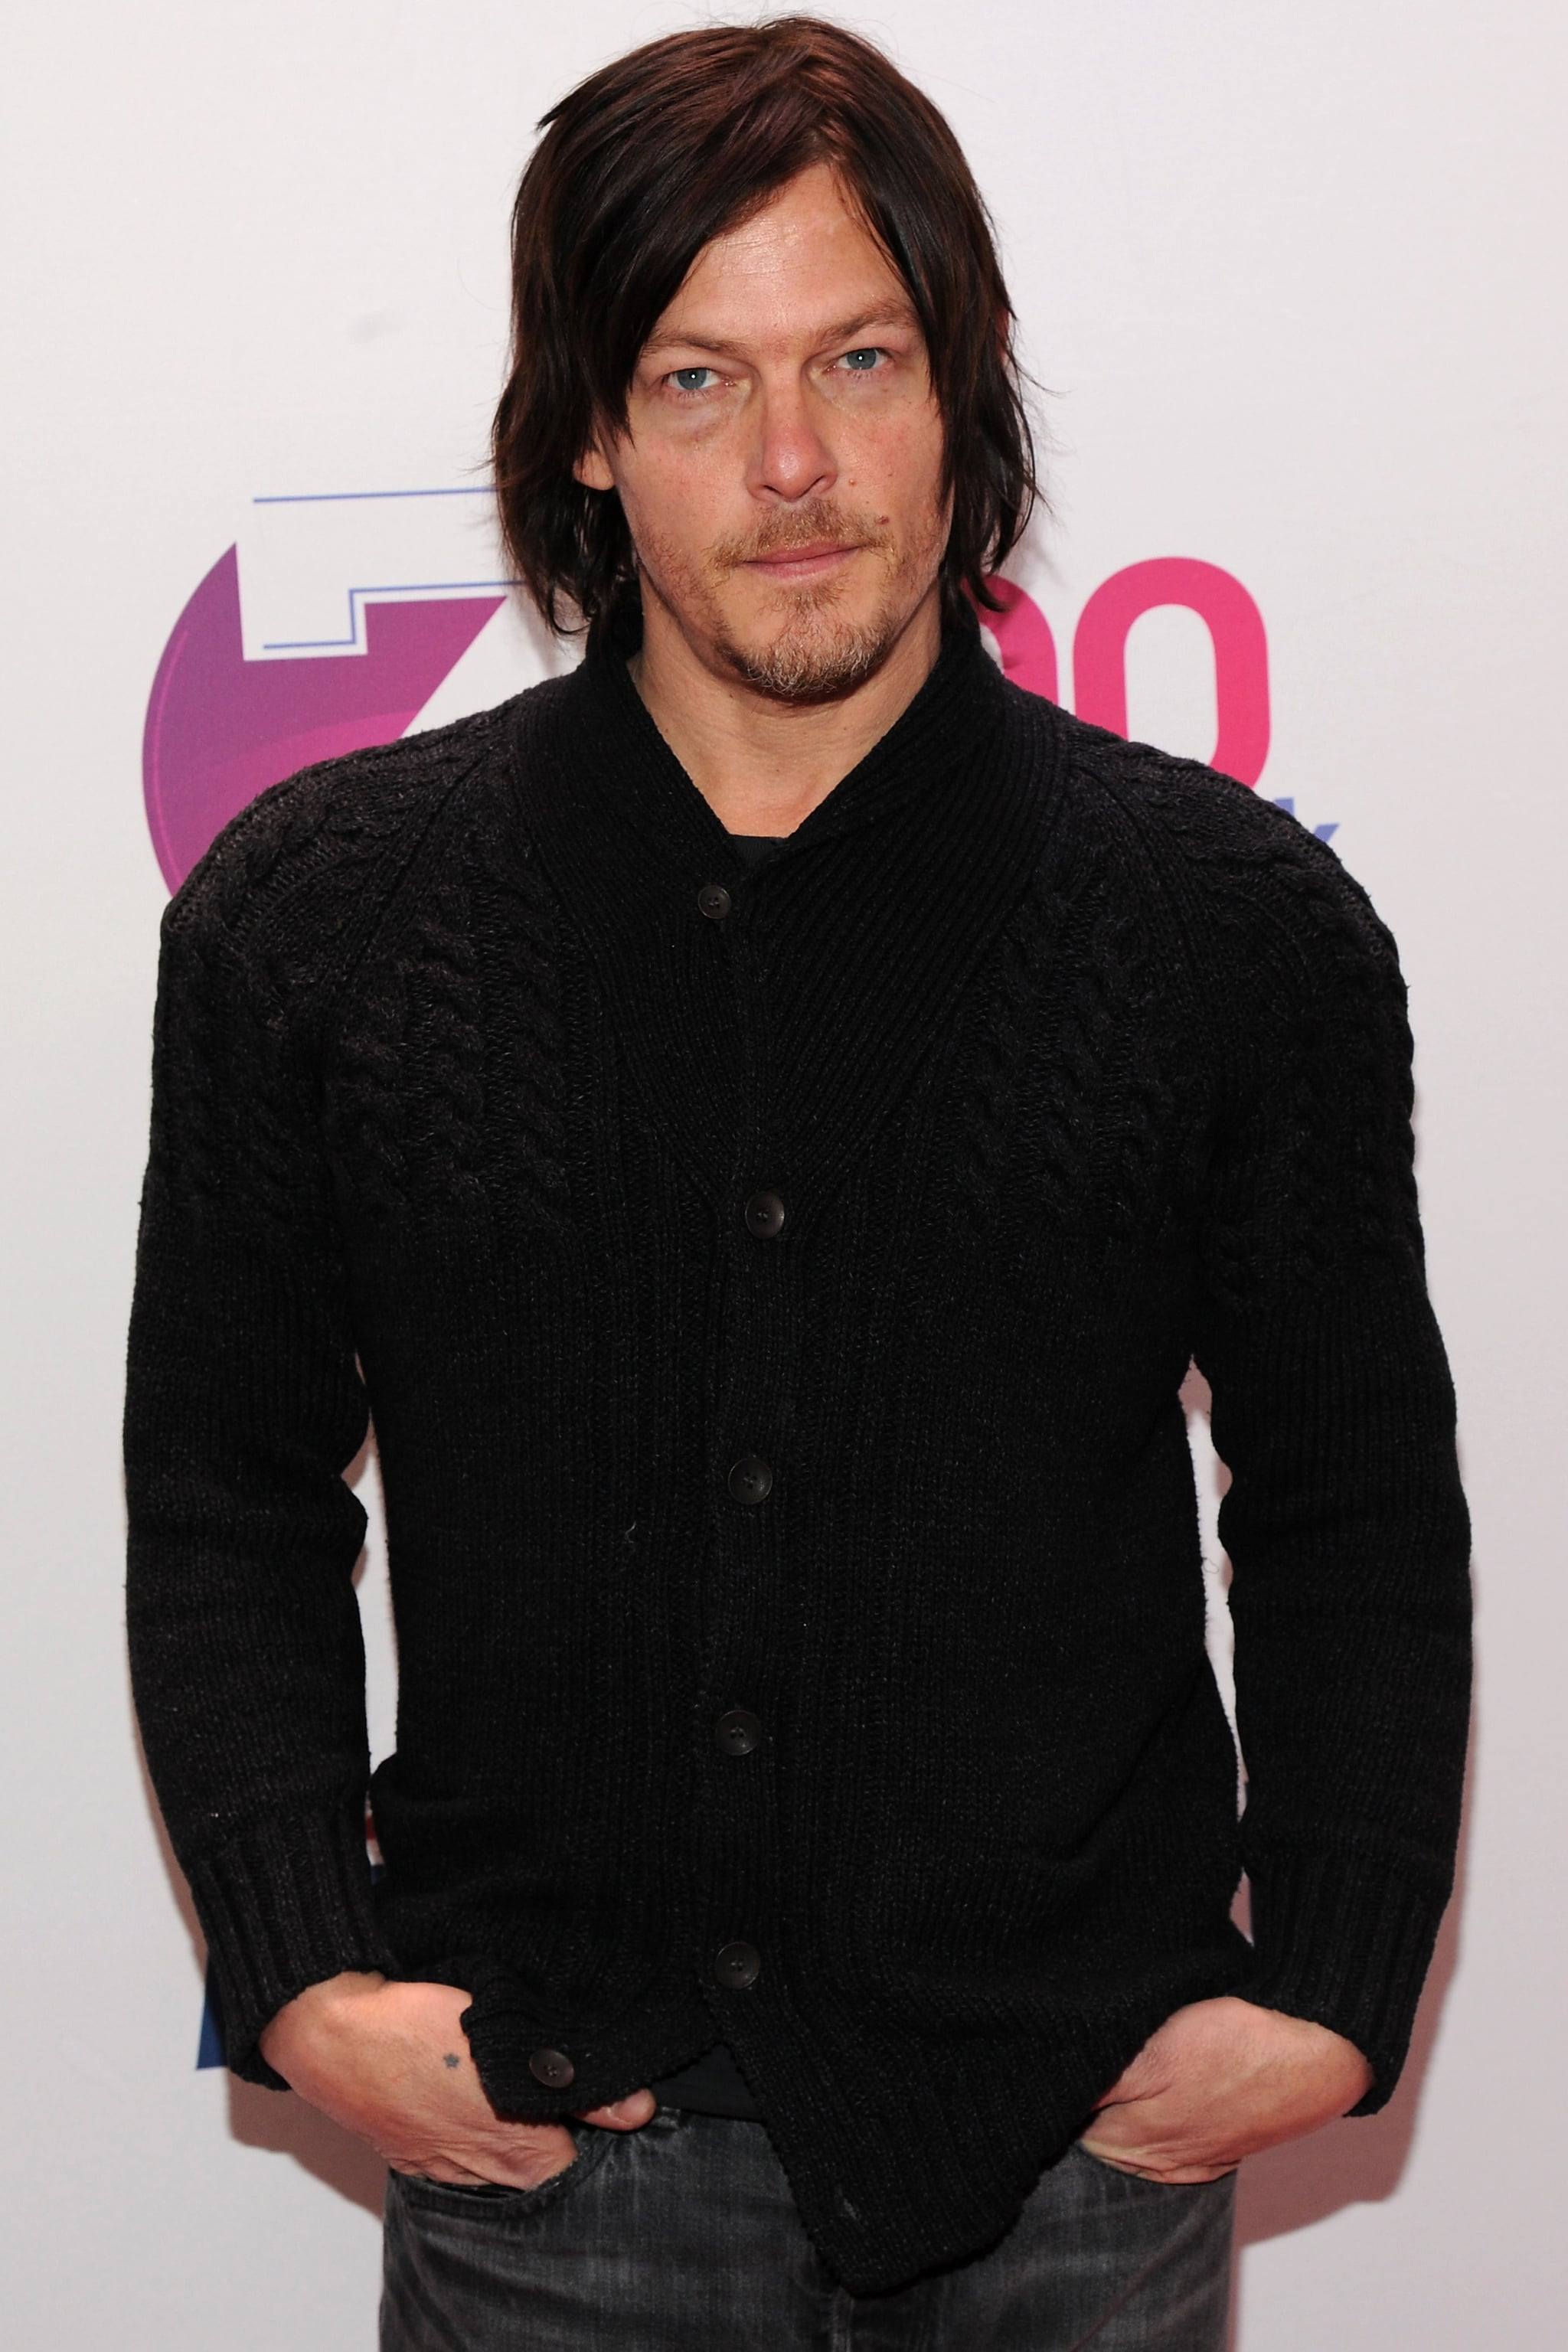 The Walking Dead's Norman Reedus will star in Air, a sci-fi thriller also starring Djimon Hounsou. The two will play custodians who look after cryogenically frozen people after a nuclear fallout.